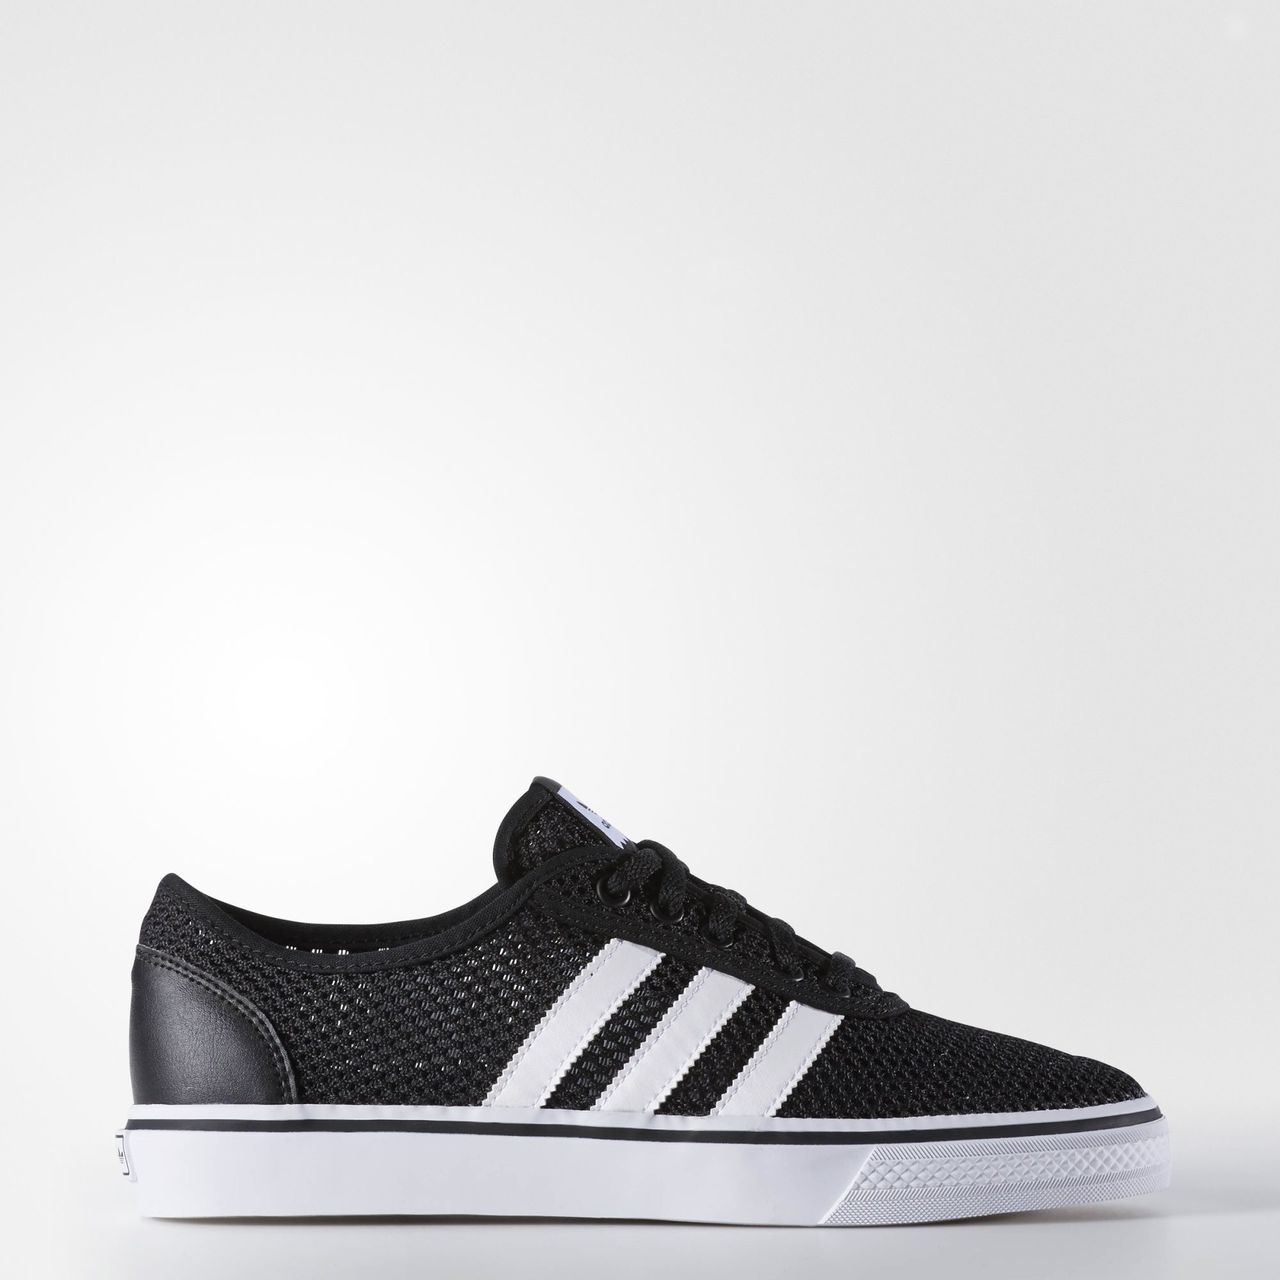 adidas adiease shoes black white shoes